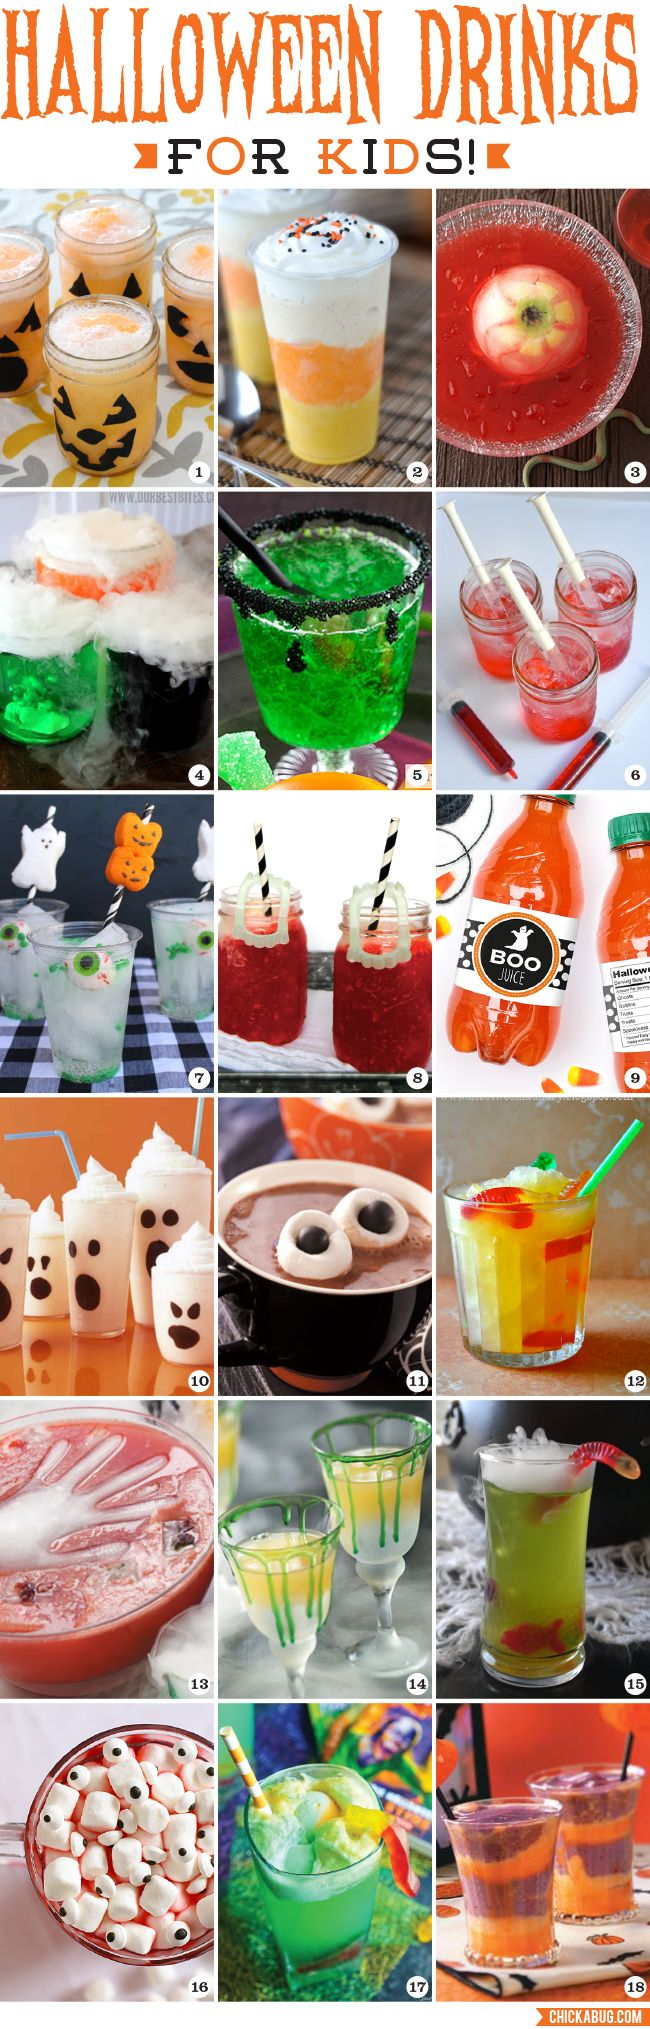 250 best Halloween images on Pinterest